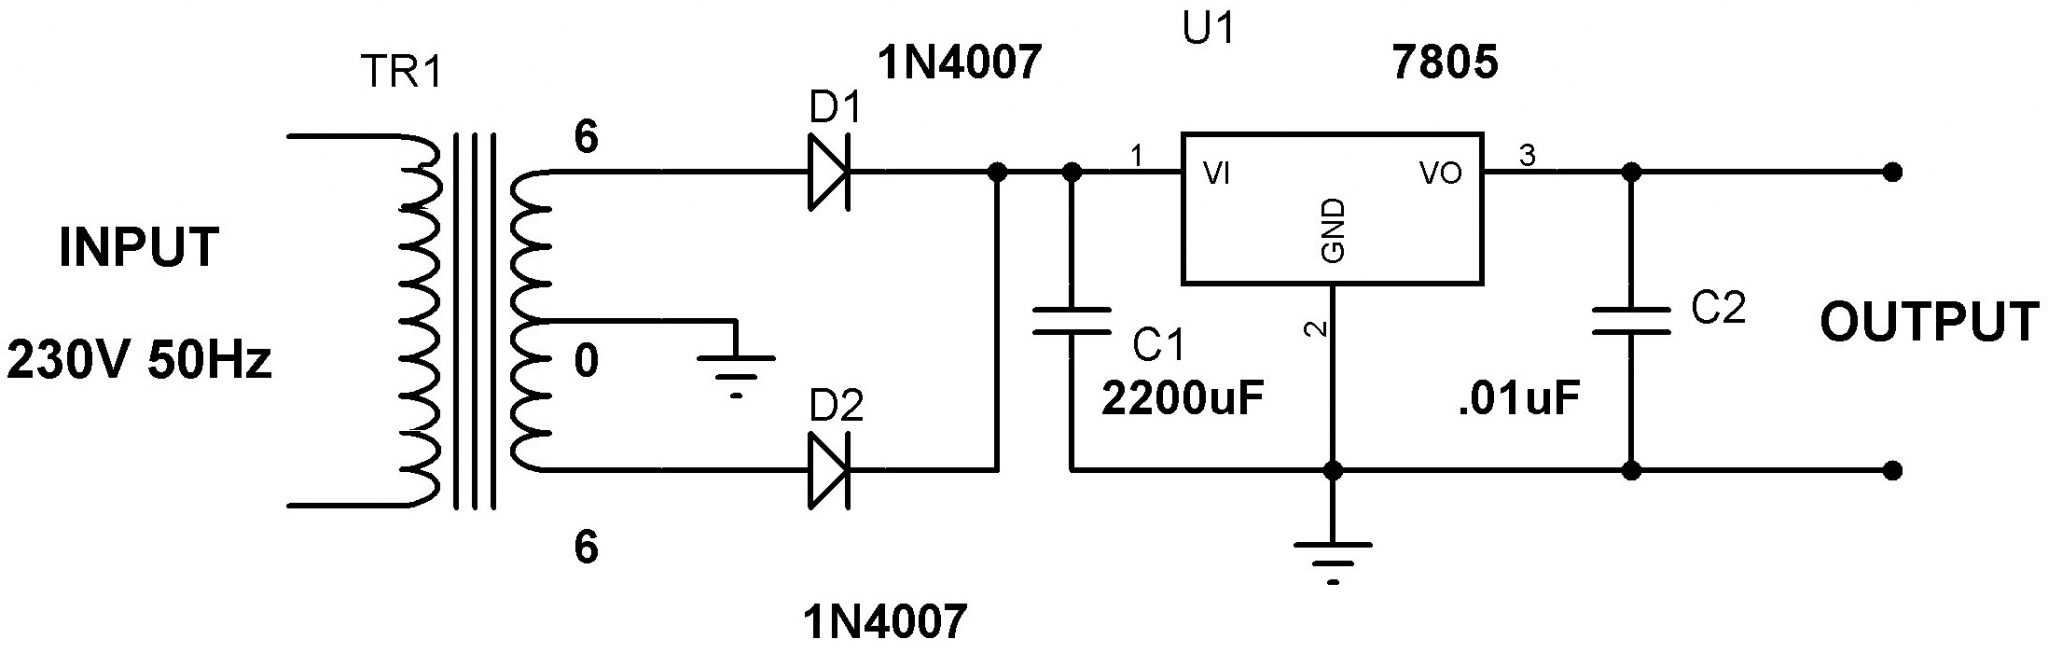 Circuit Diagram 5v Dc Supply Diy Enthusiasts Wiring Diagrams Ac Converter Power Using 7805 Voltage Regulator With Design Rh Electrosome Com Simple